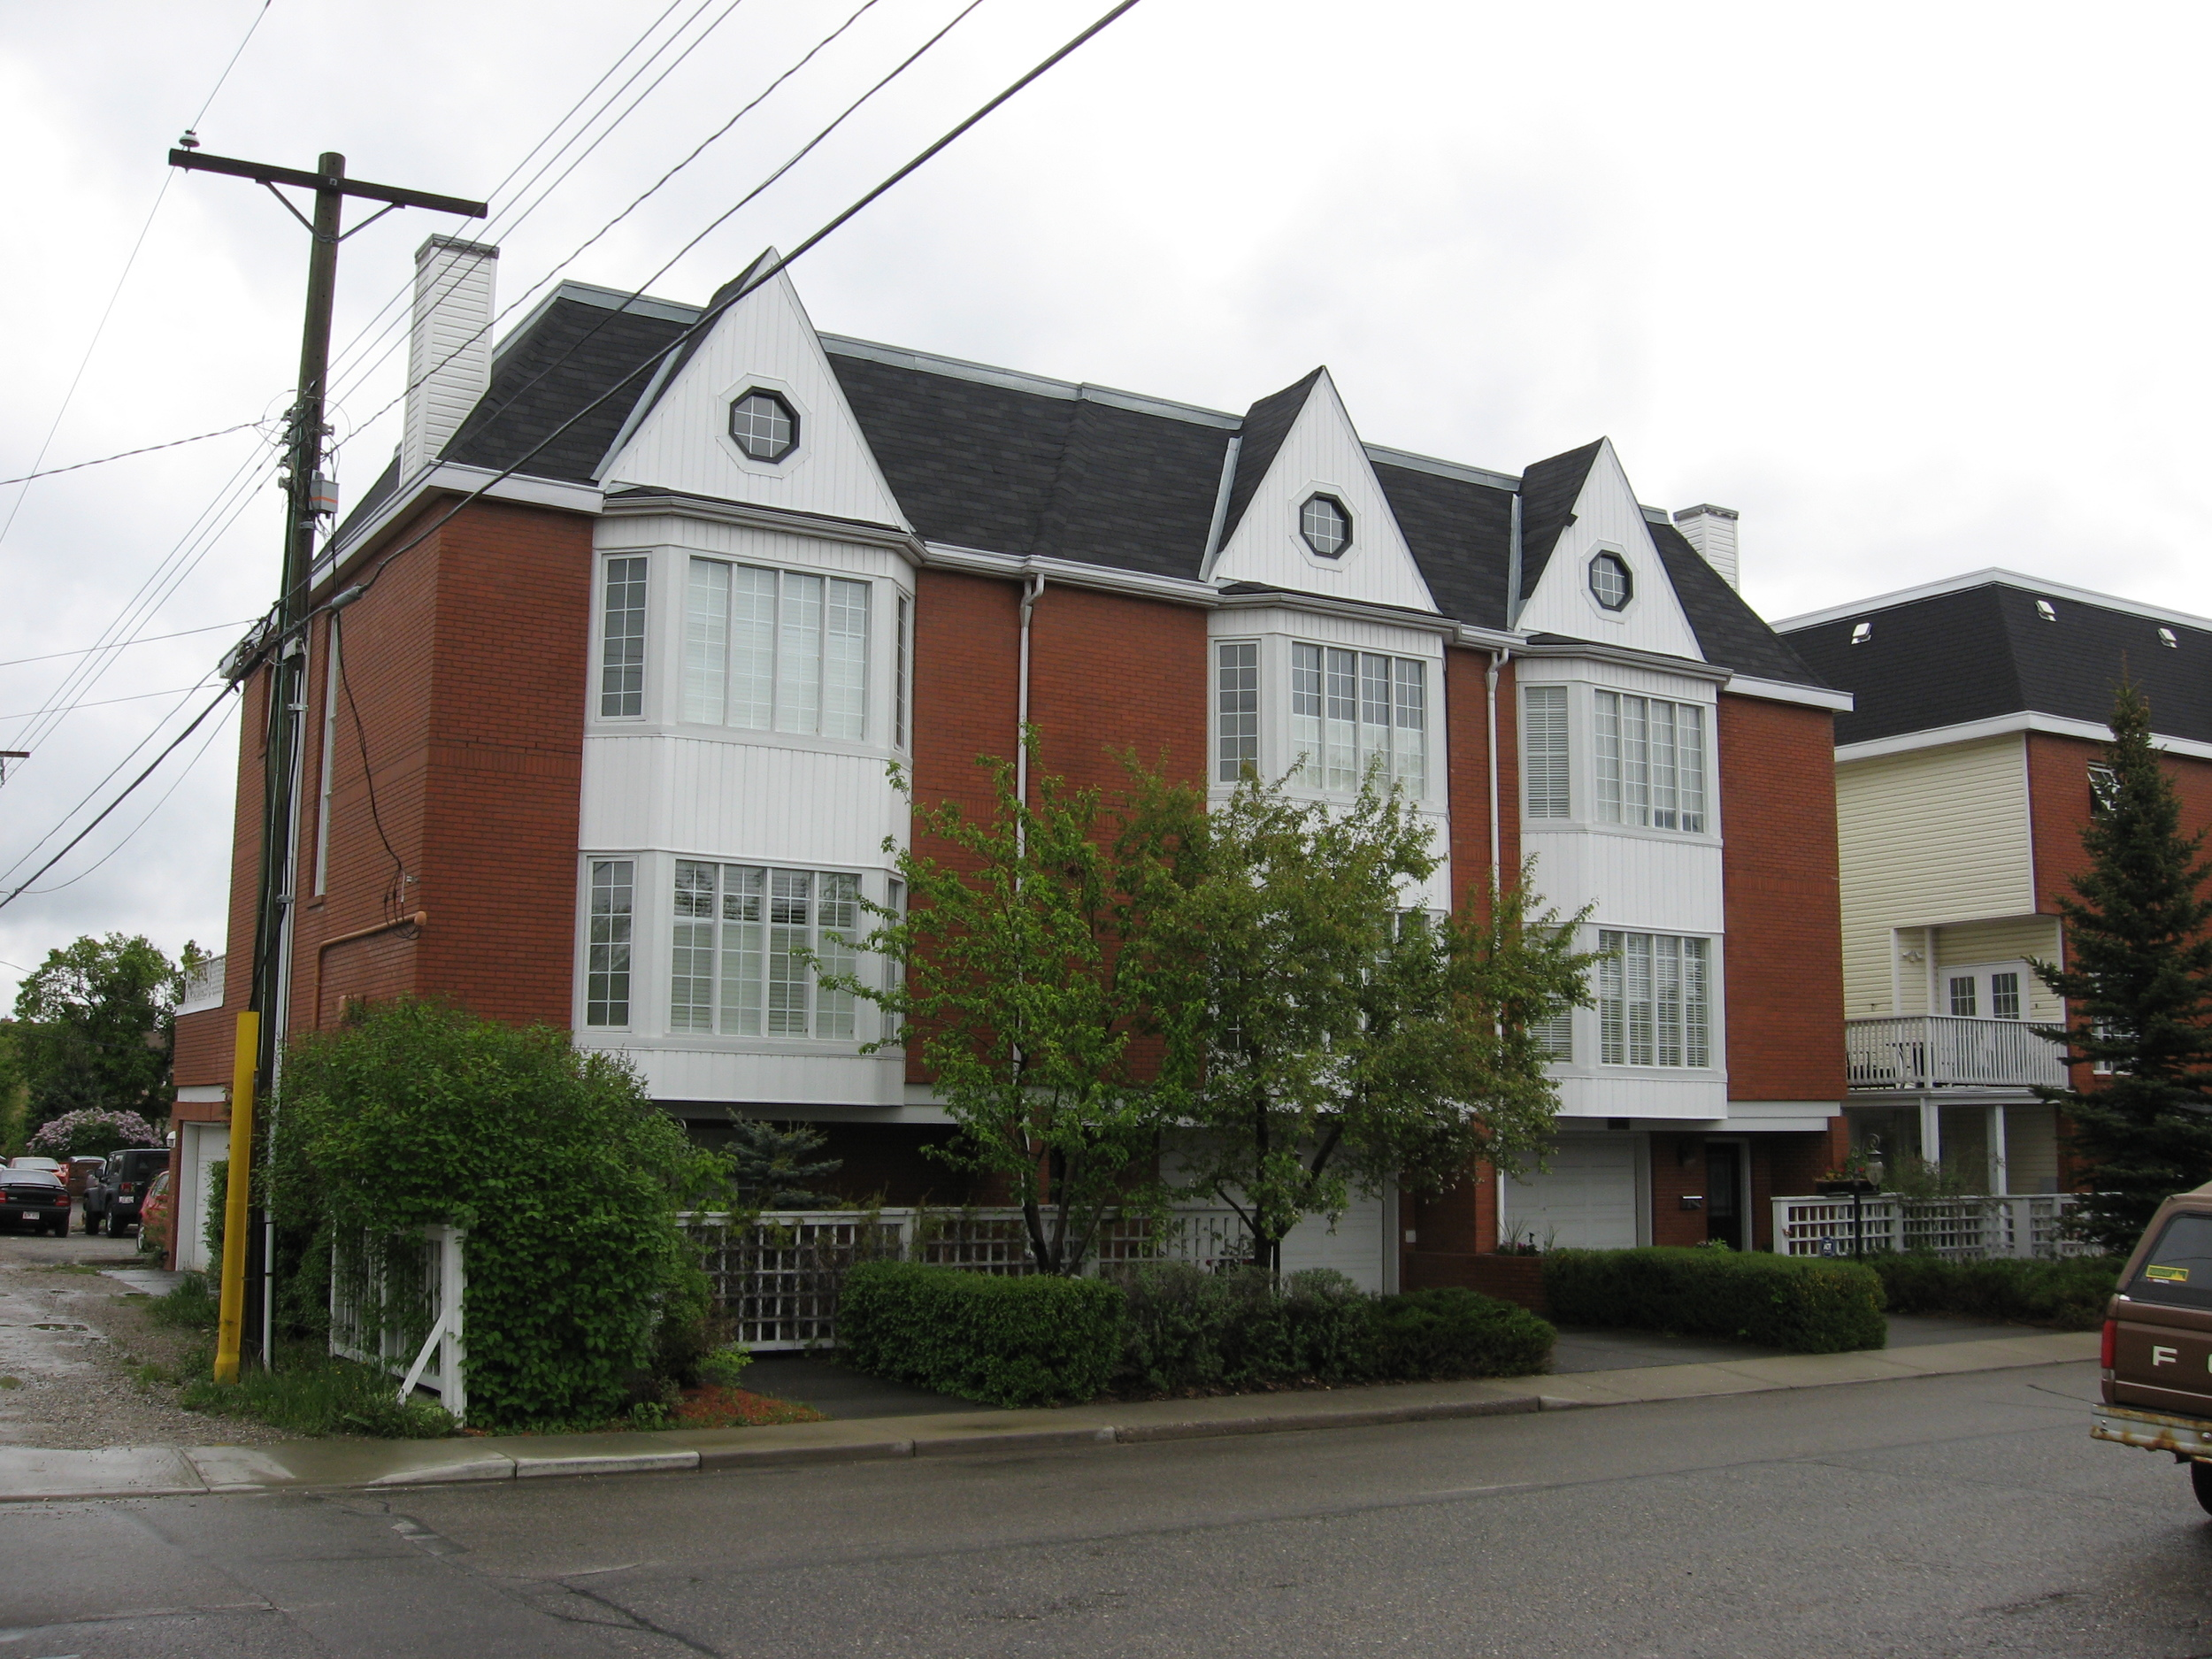 Example of infill homes with site restrictions that have been resolved with single car garages at front and garage off the alley. Facade materials are compatible with older homes in the area. The planting of small trees and shrubs also help to make these homes more attractive.